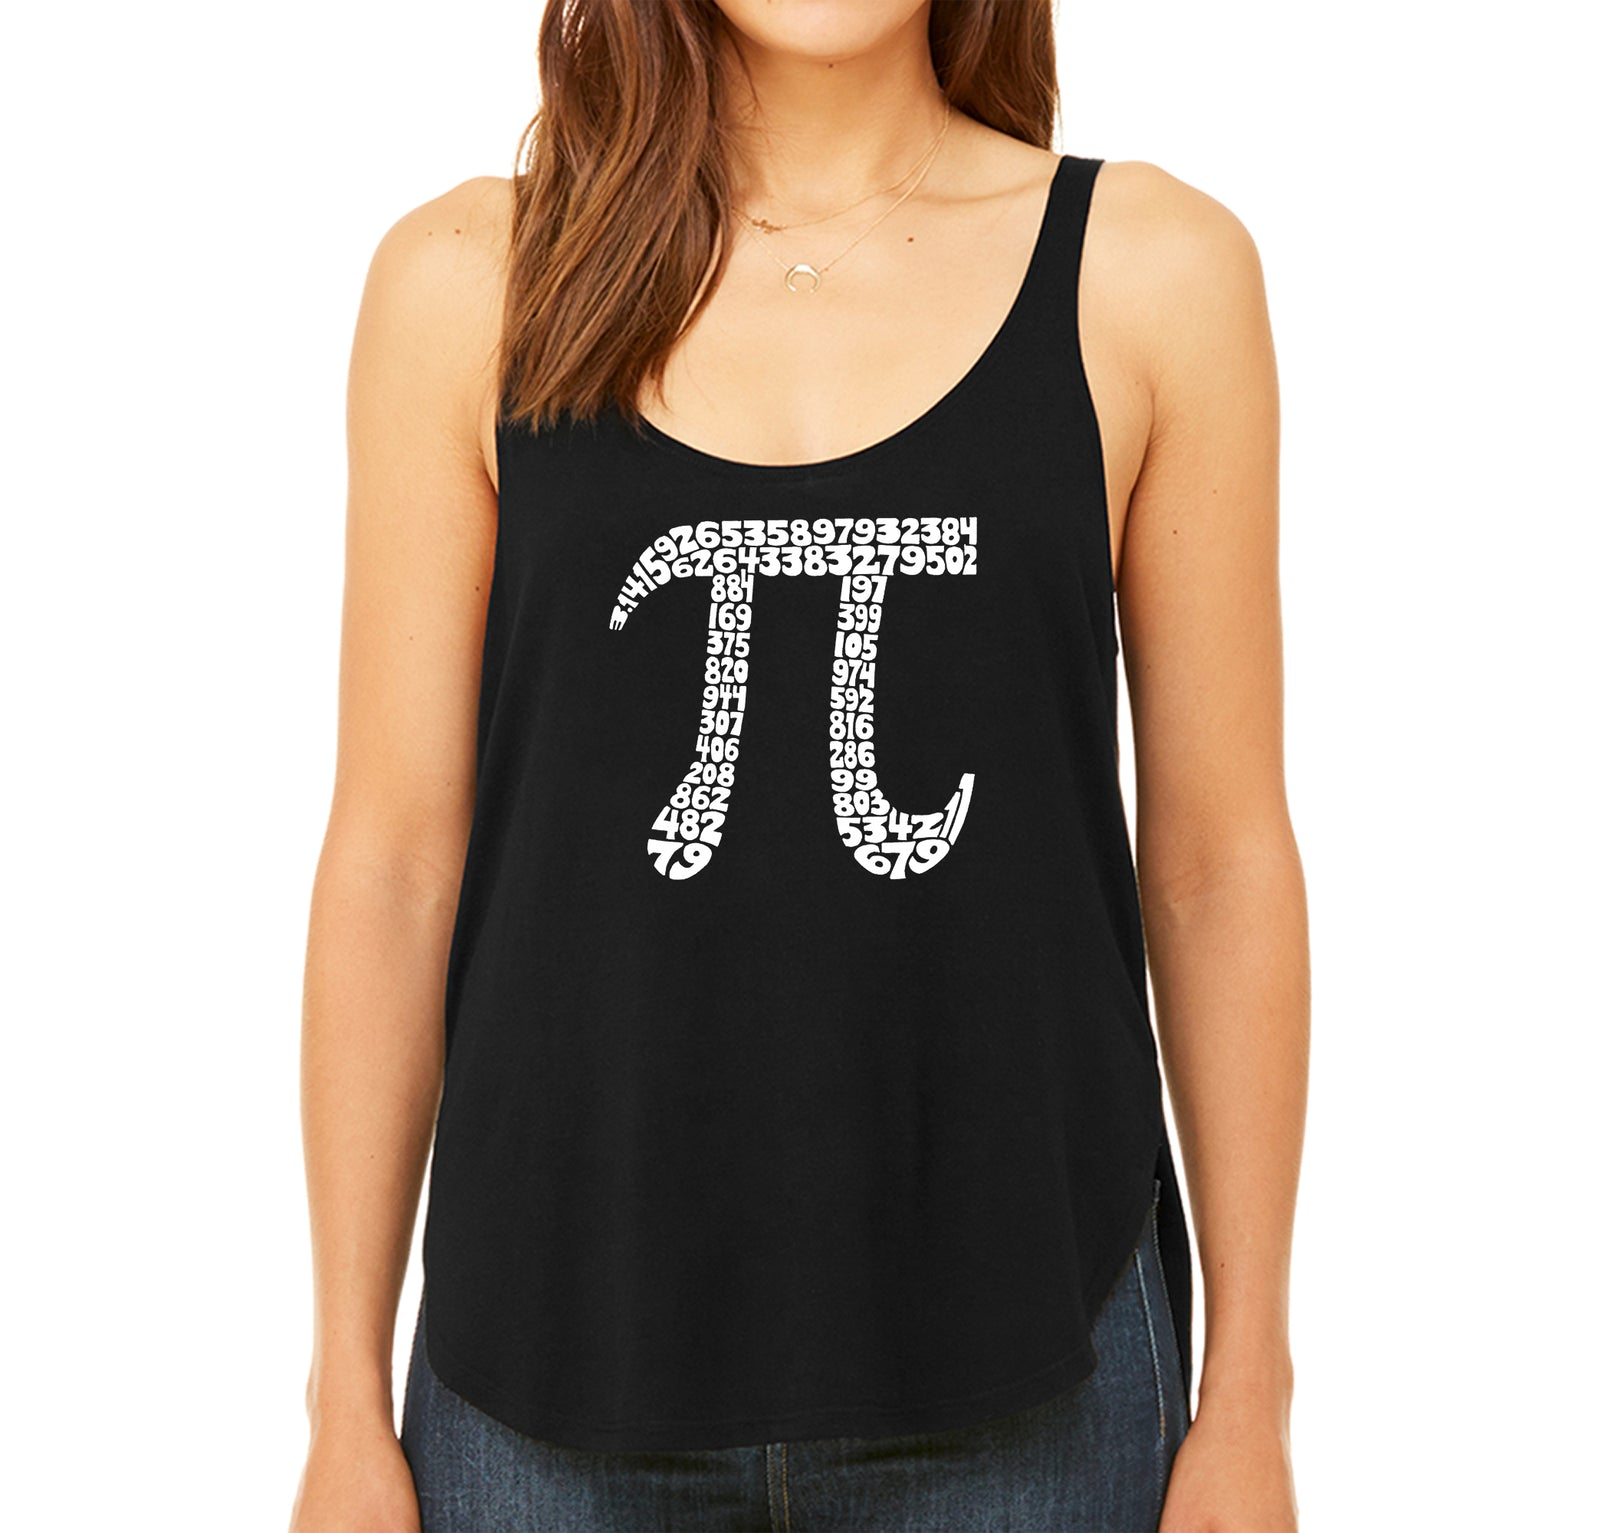 Women's Premium Word Art Flowy Tank Top - THE FIRST 100 DIGITS OF PI